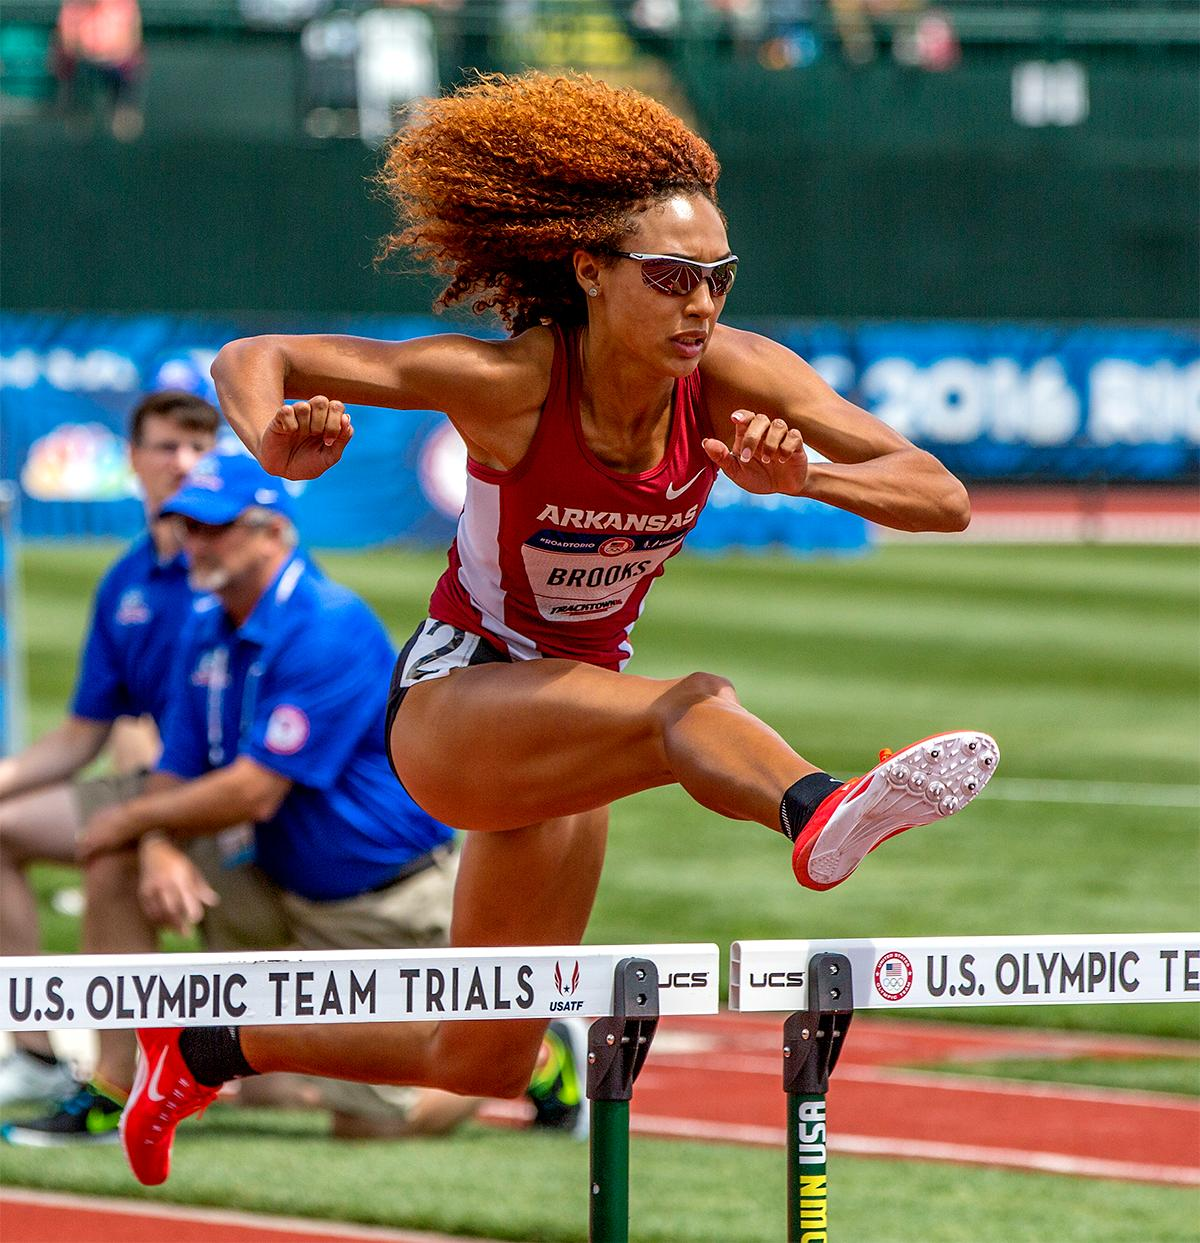 Taliyah Brooks springs over hurdles as her hair fans out behind her in the 100 meter hurdles portion of the heptathlon. Brooks finished fourth in the hurdles with a time of 13.39. Photo by August Frank, Oregon News Lab